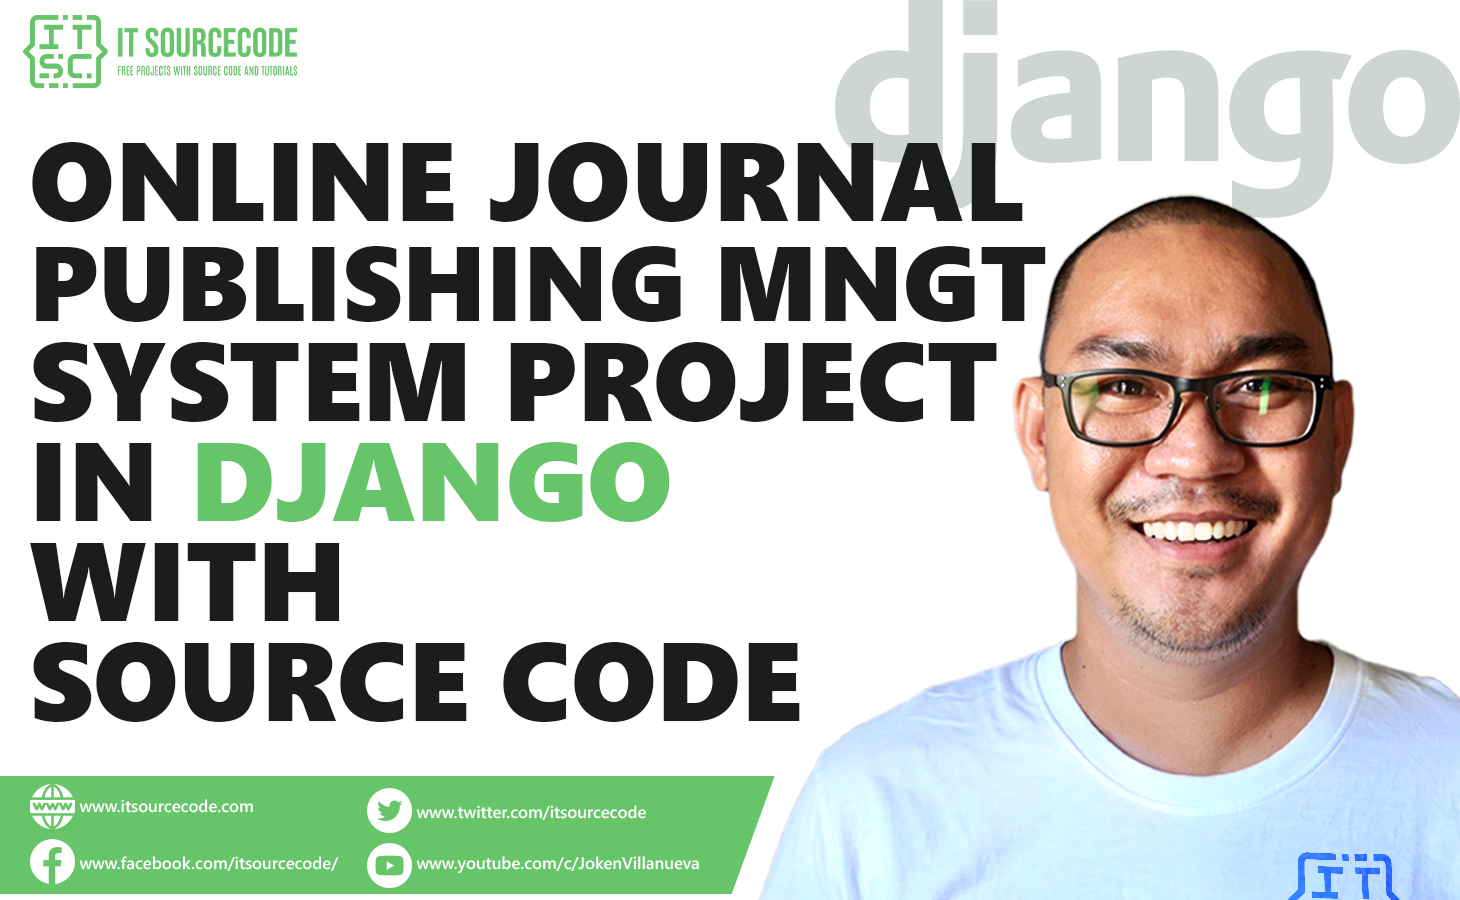 Online Journal Management System in Django with Source Code